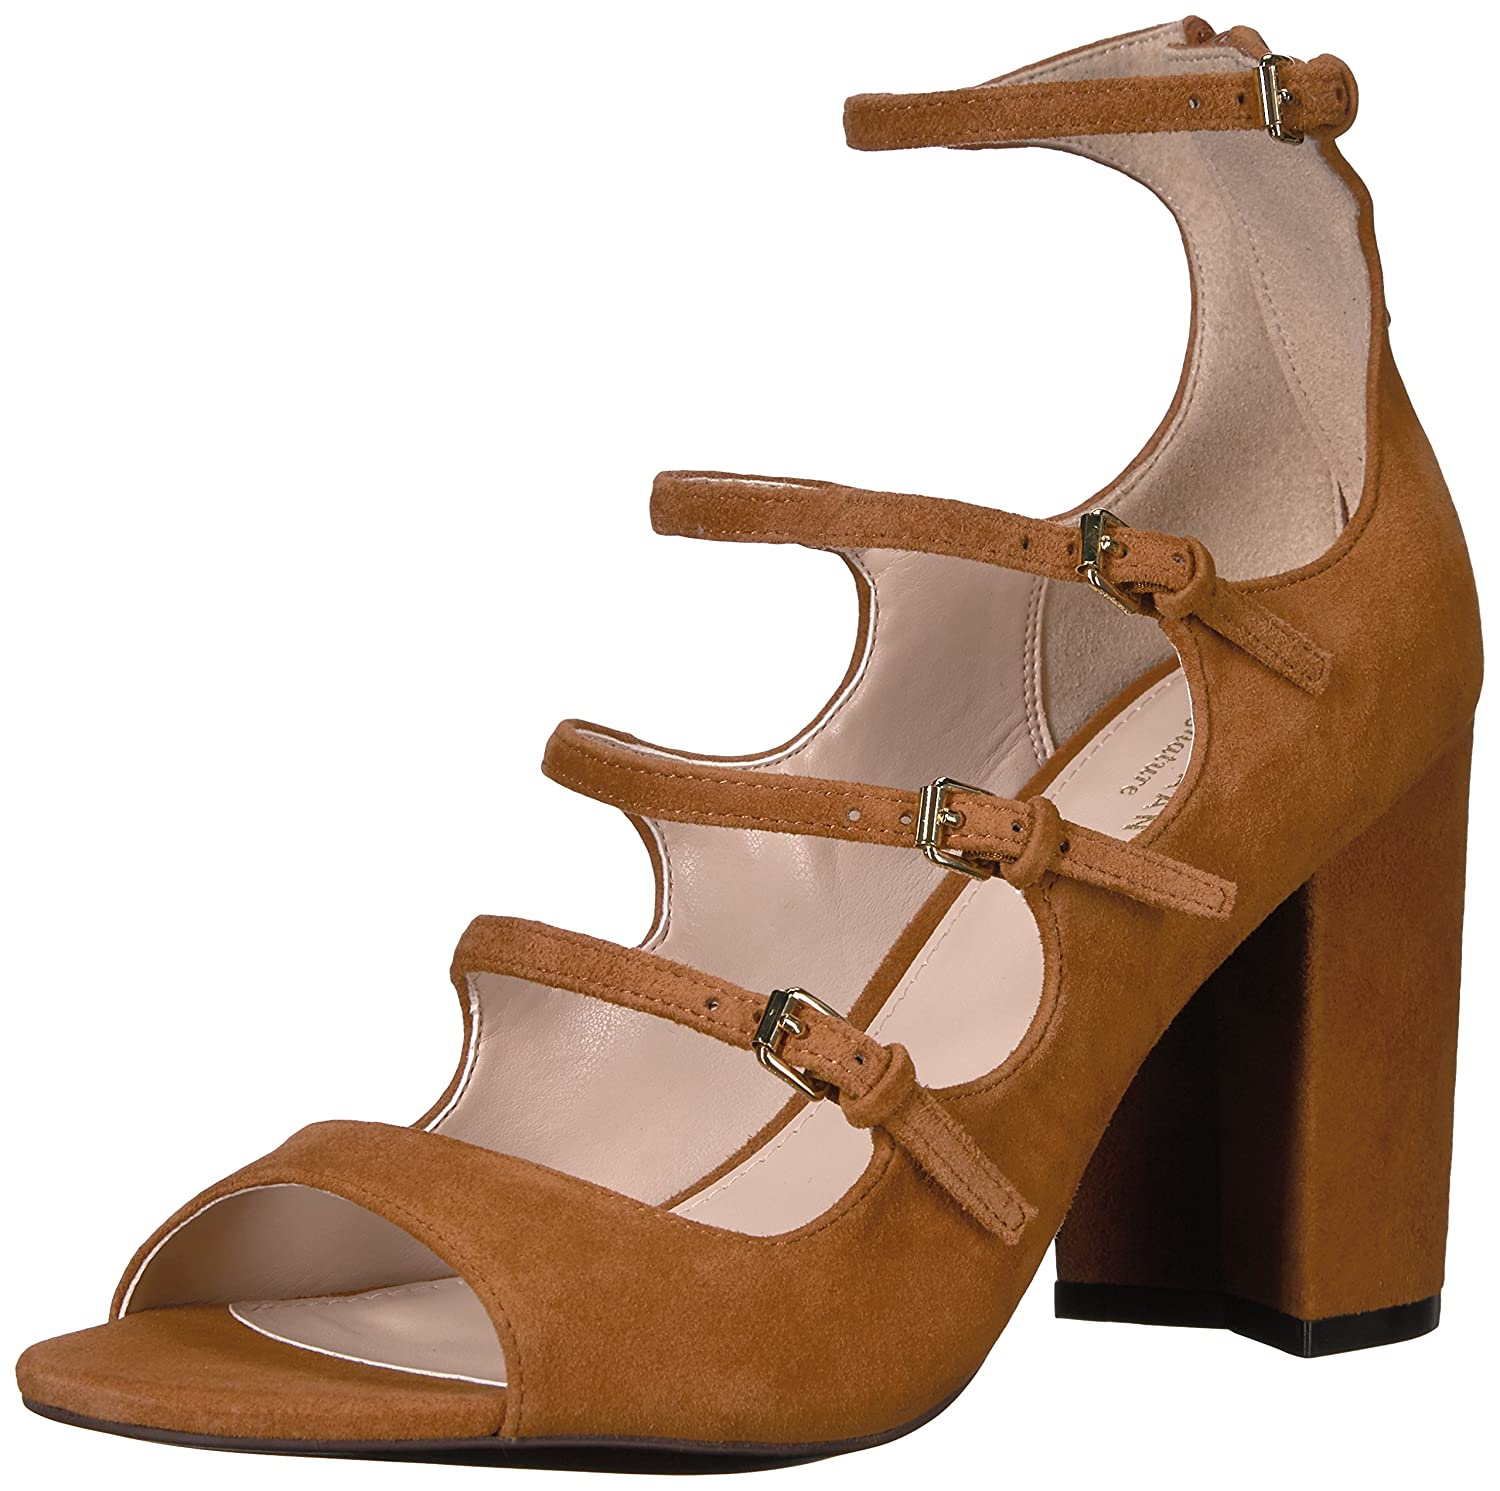 Cole Haan Women's Cielo High Dress Sandal B01N700BSS 9 B(M) US|British Tan